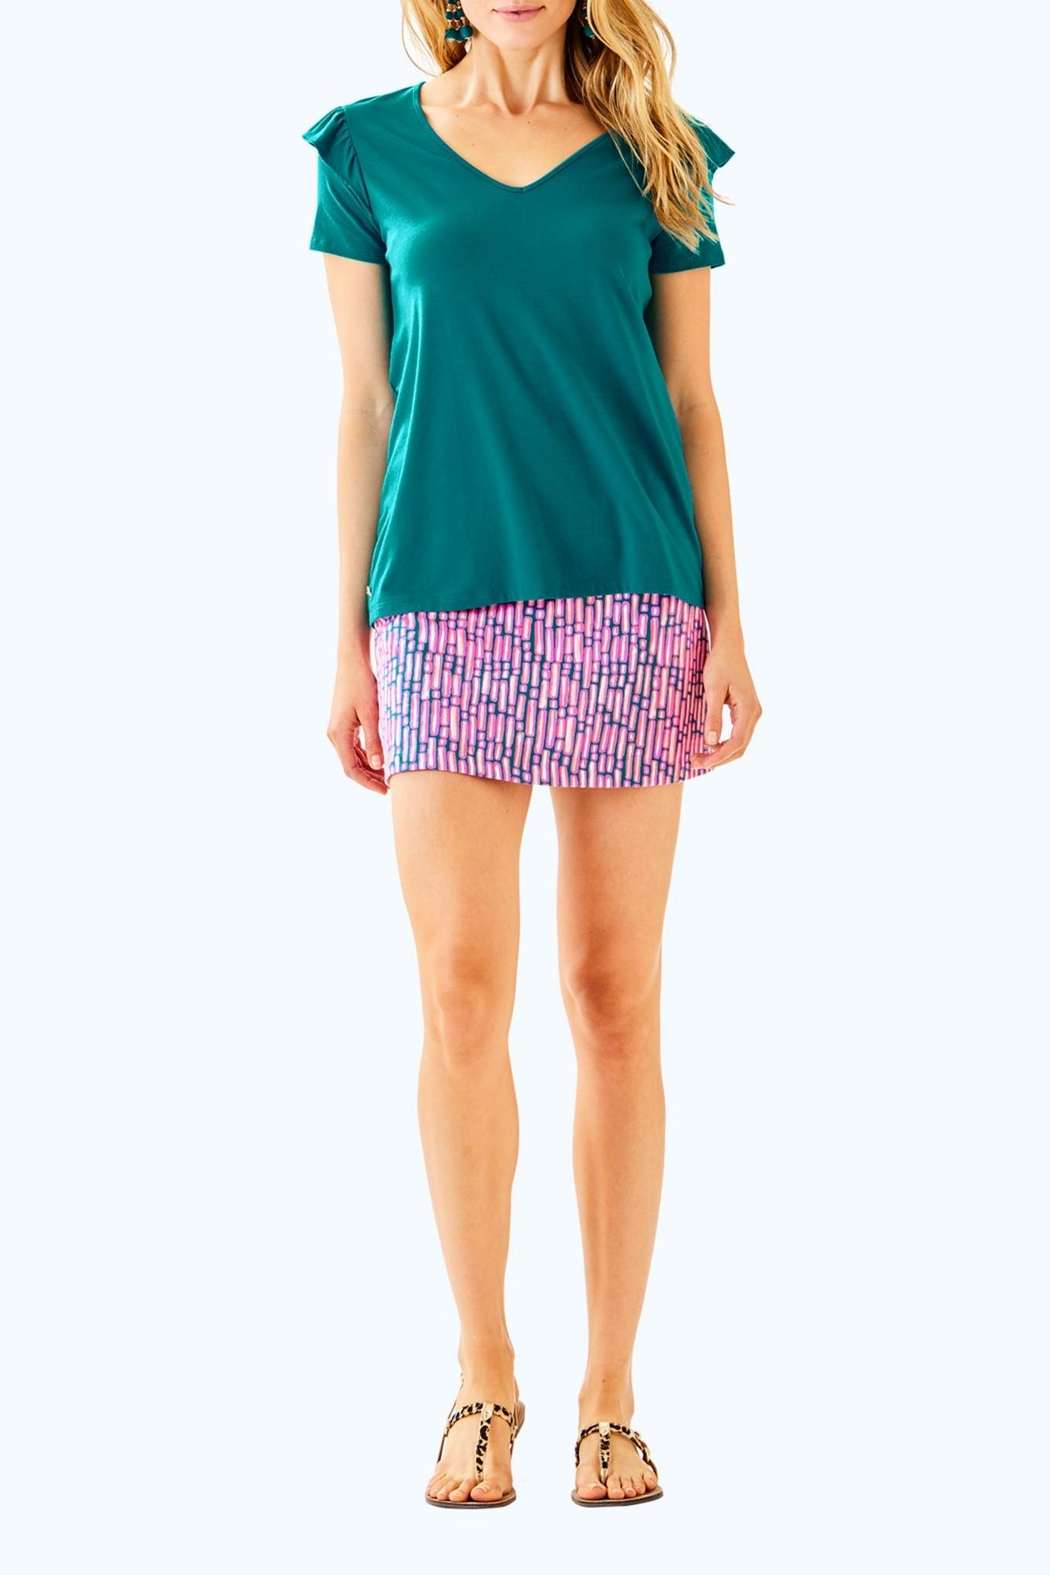 Lilly Pulitzer Samira Top - Side Cropped Image